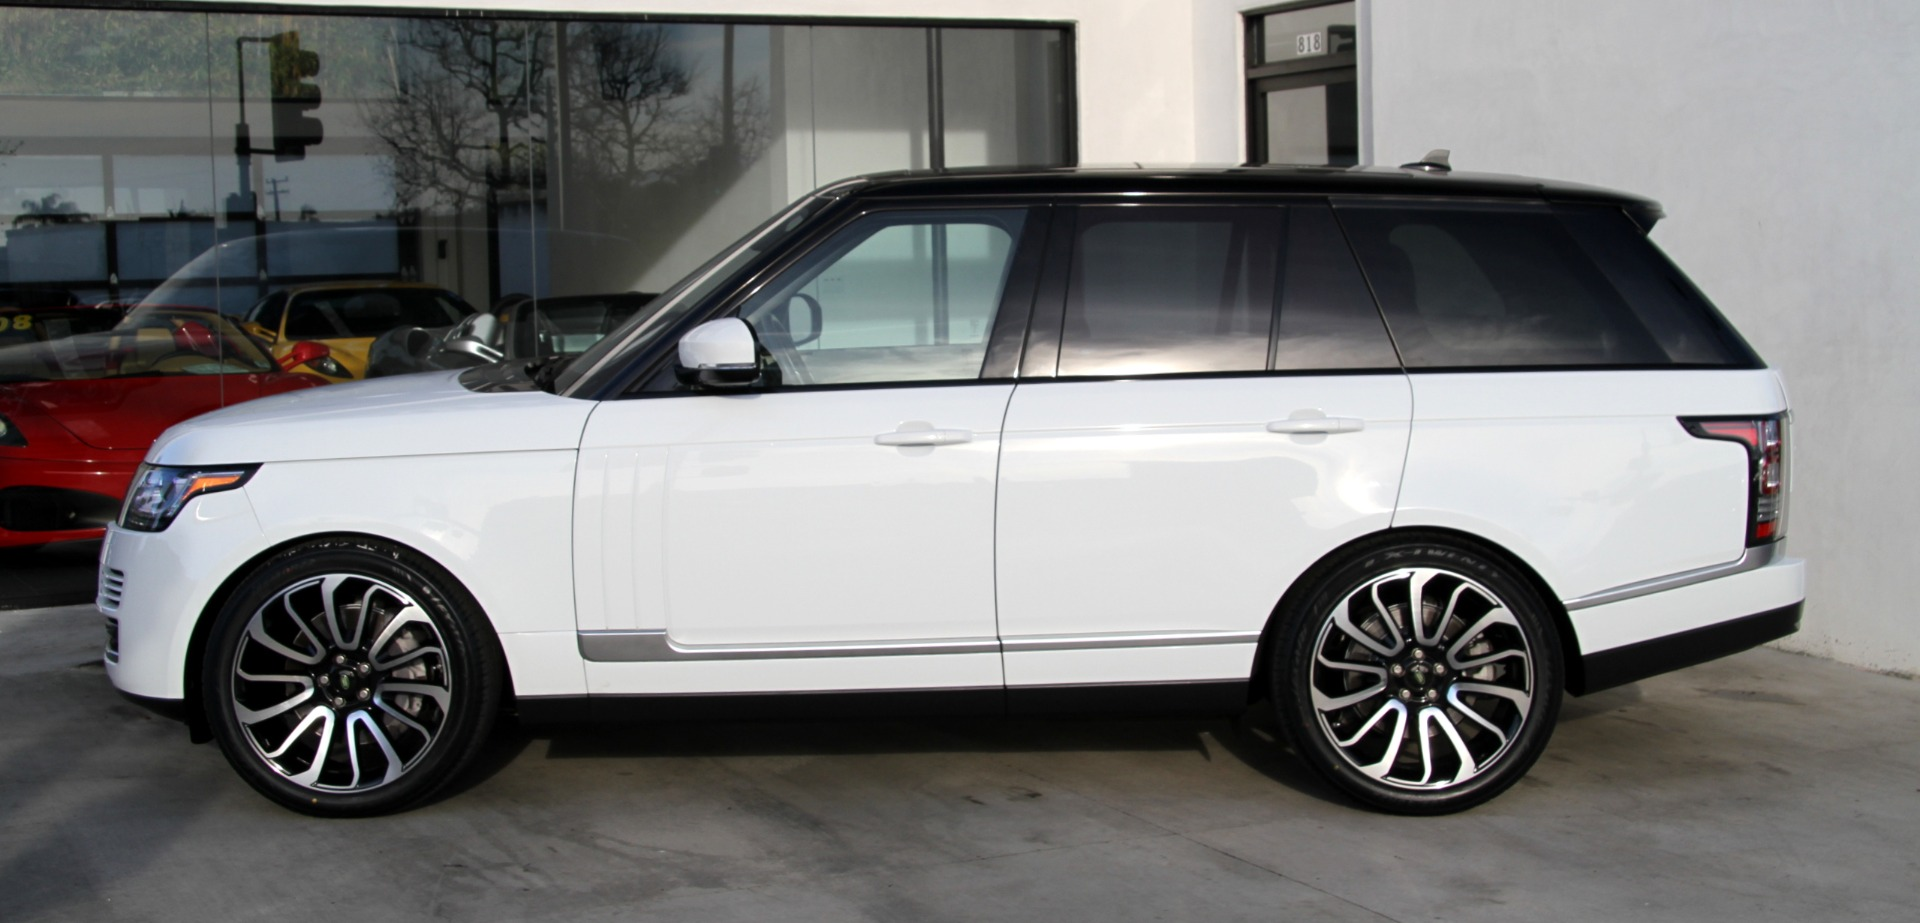 Vehicles For Sale Near Me >> 2016 Land Rover Range Rover HSE Stock # 6092 for sale near Redondo Beach, CA | CA Land Rover Dealer